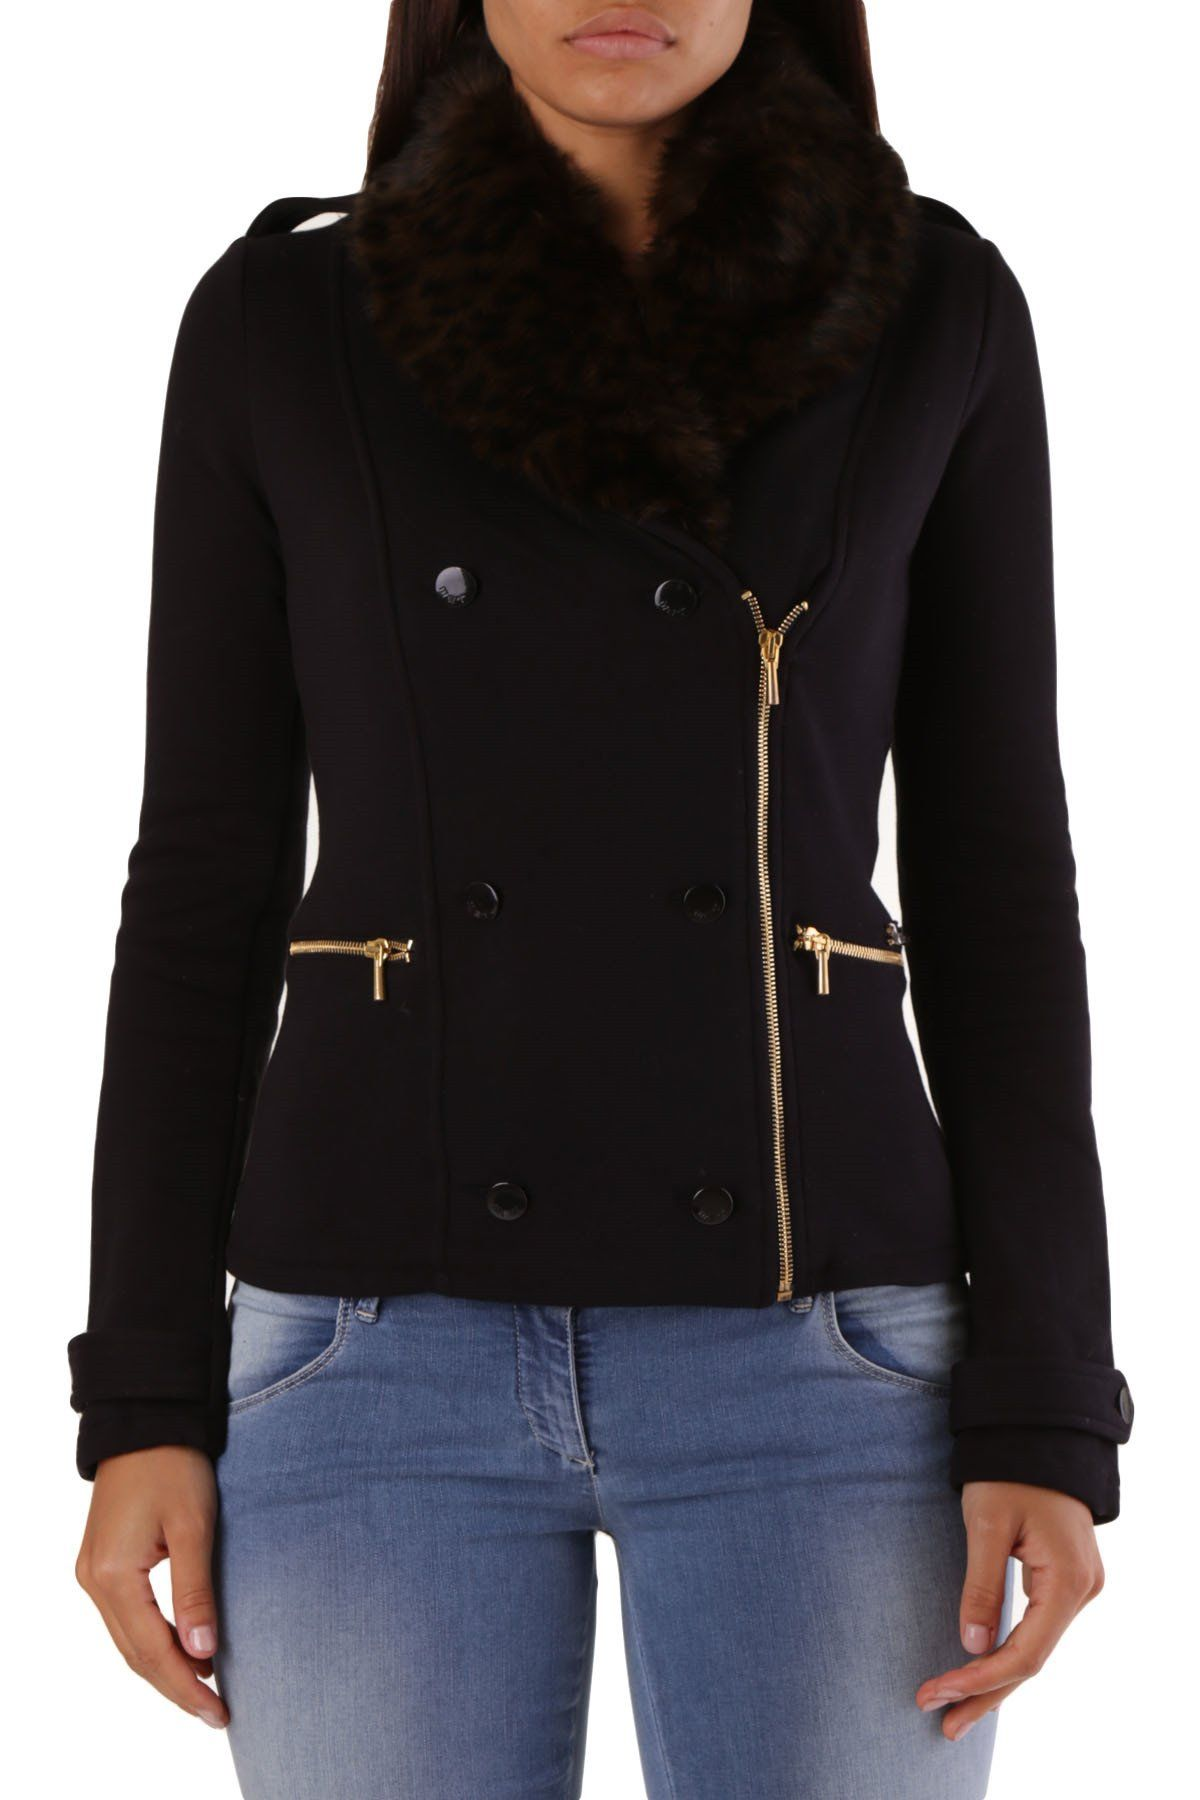 Met Women's Blazer In Black